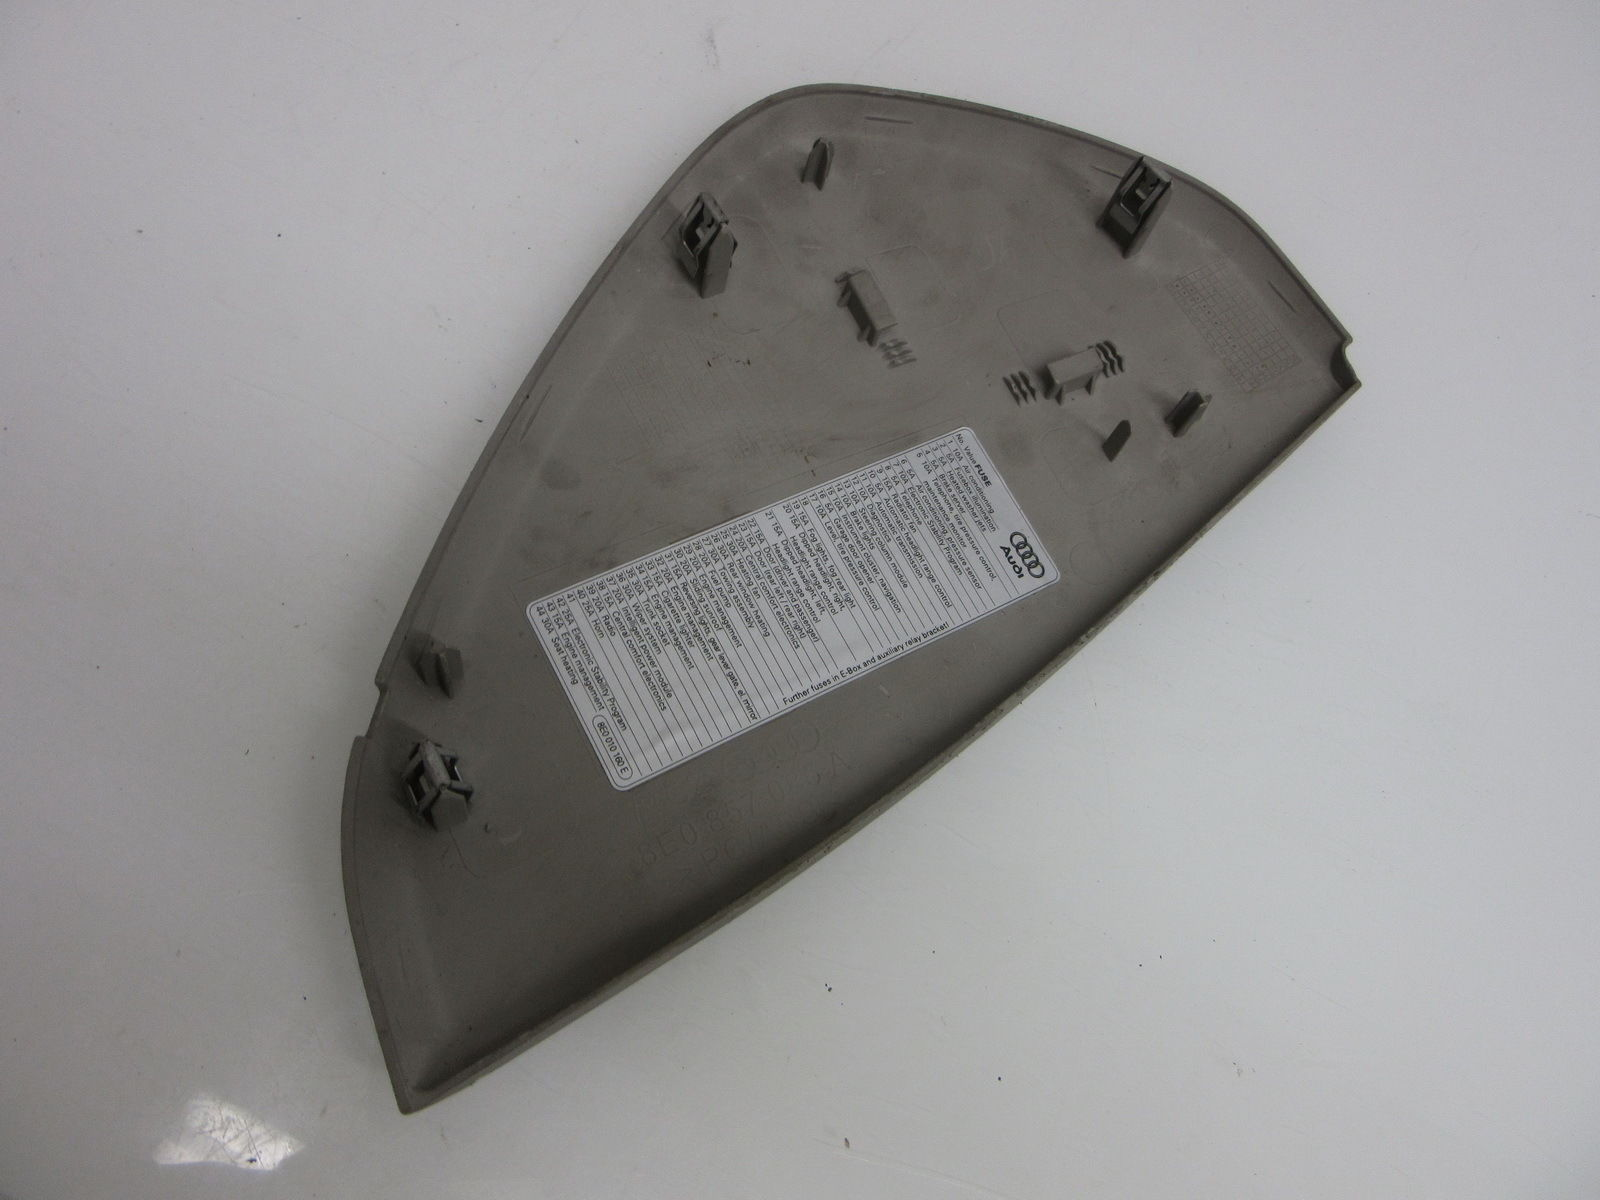 02 03 04 05 AUDI A4 FRONT LEFT FUSE BOX TRIM COVER PANEL 8E0857085 OEM 8E0